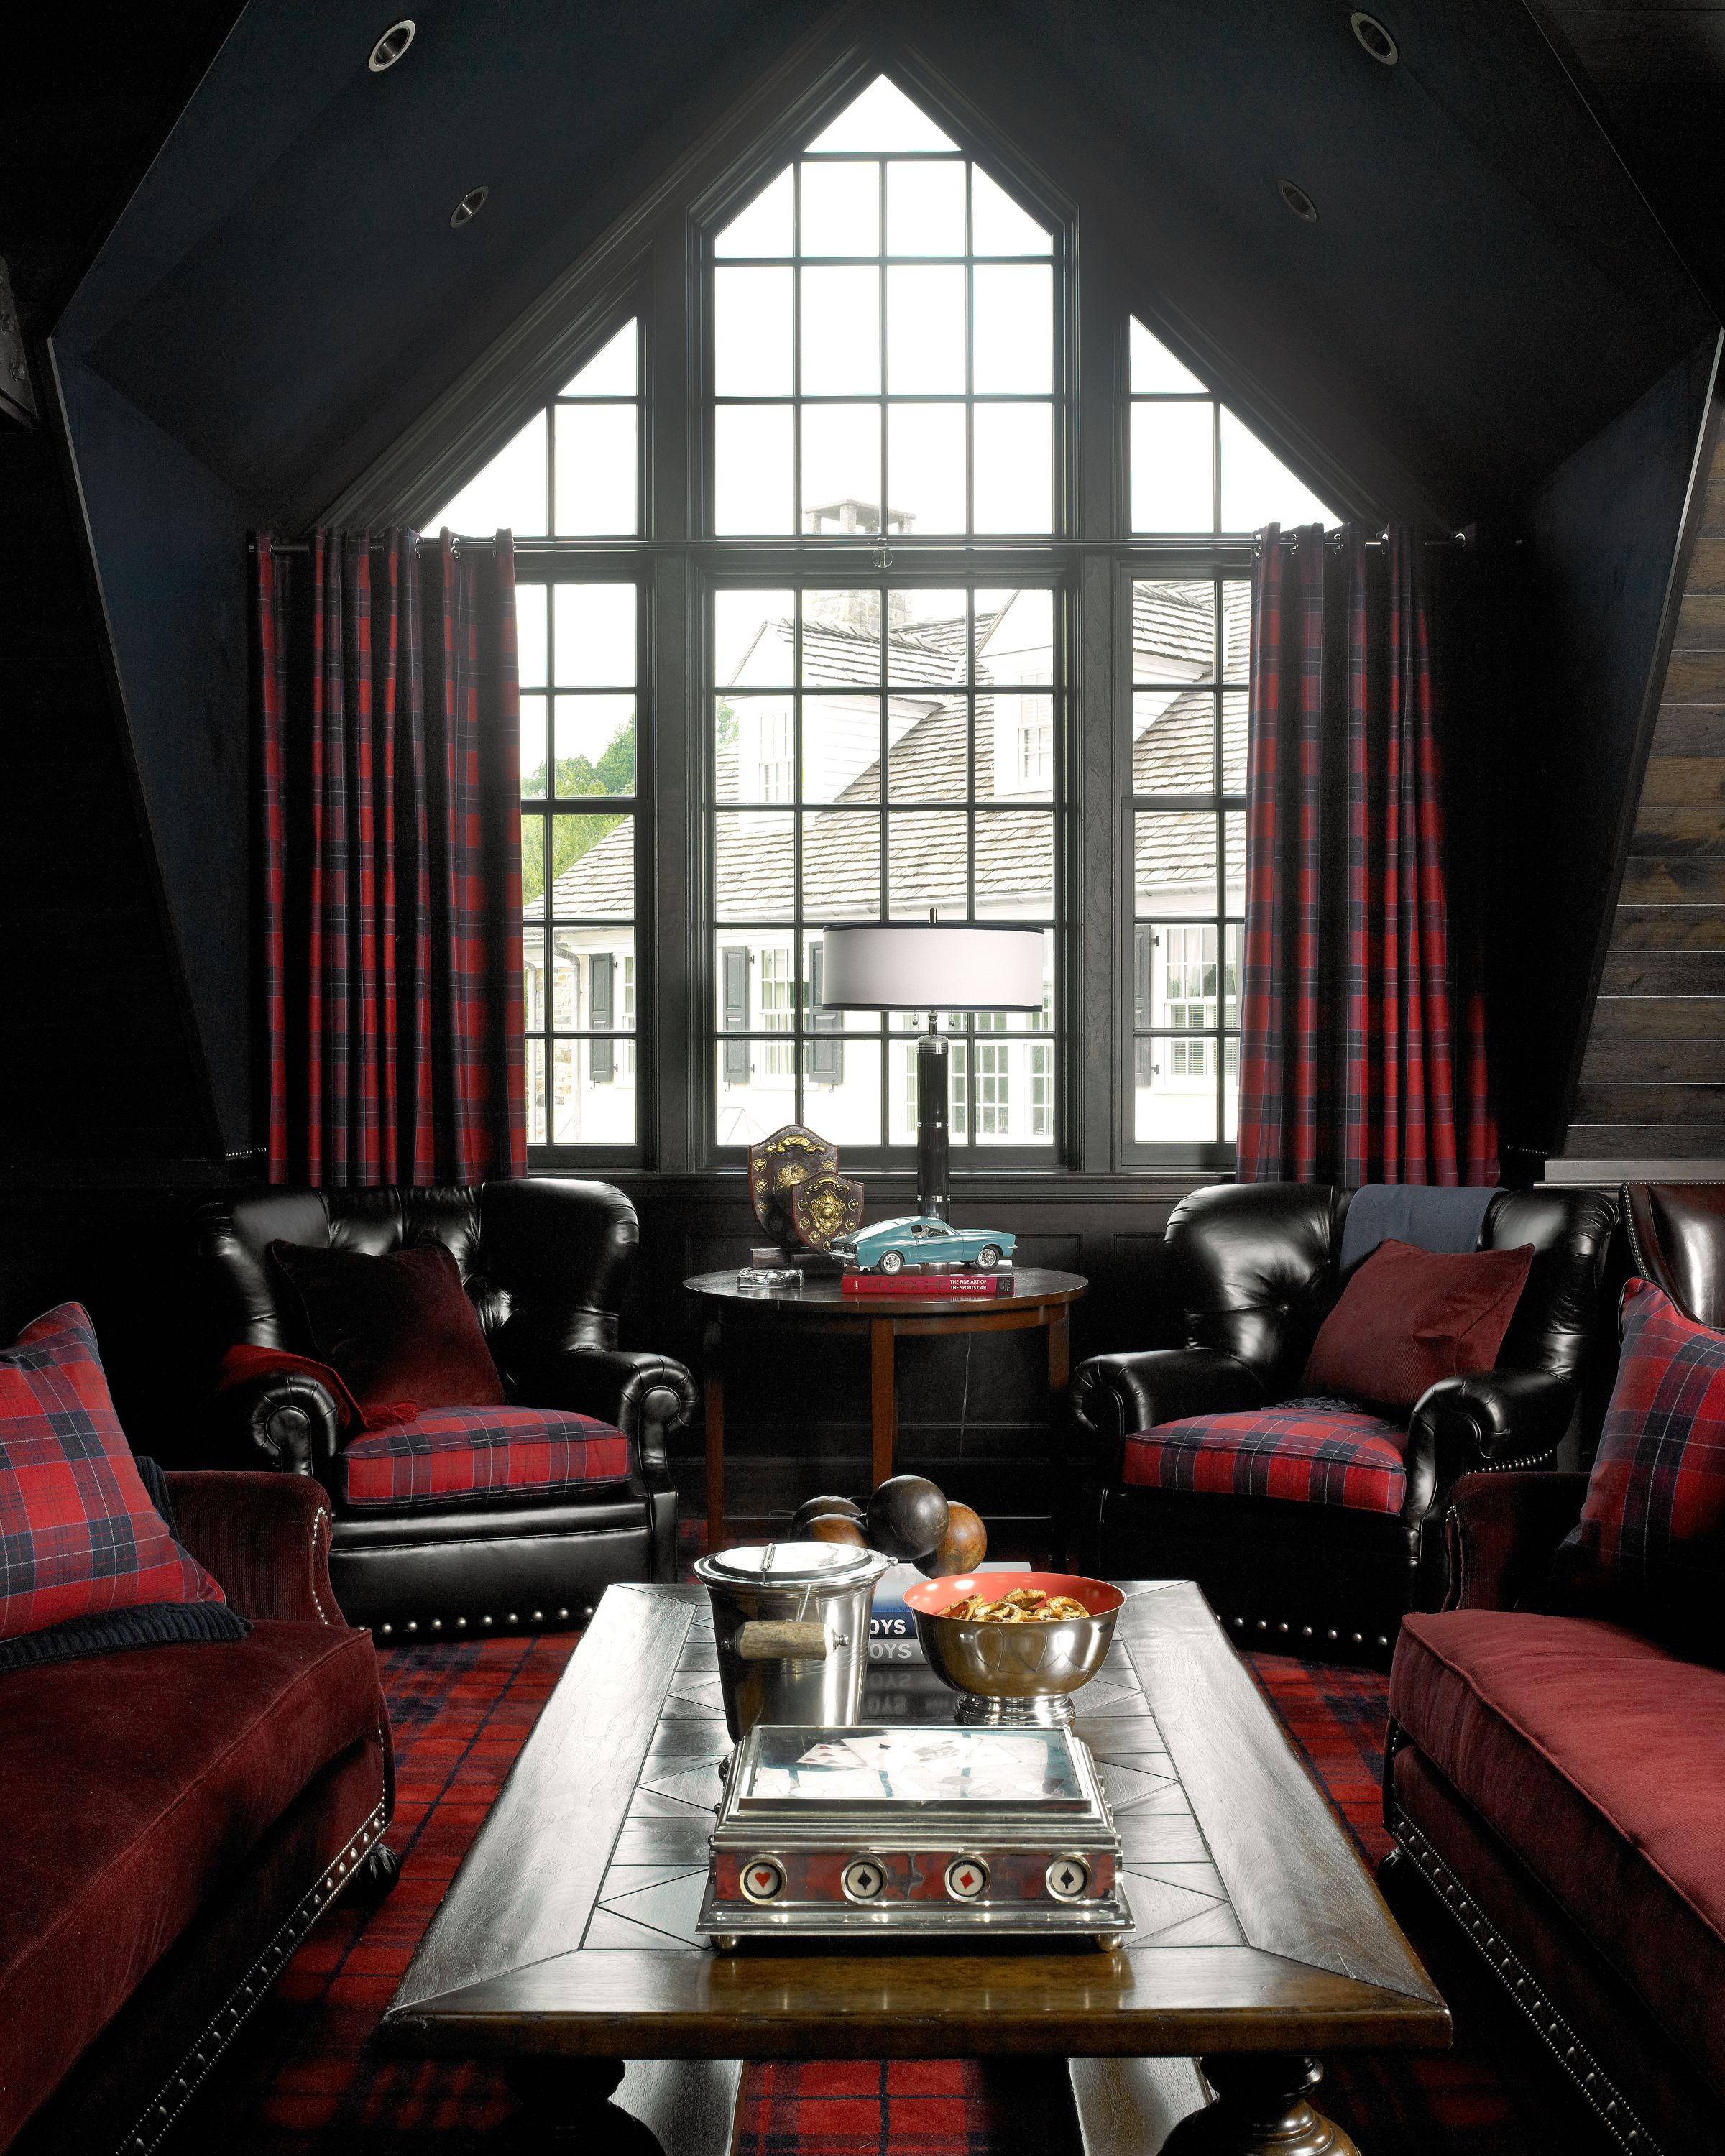 Red & Black Lounge or Living Area Masculine with Dark Woods and